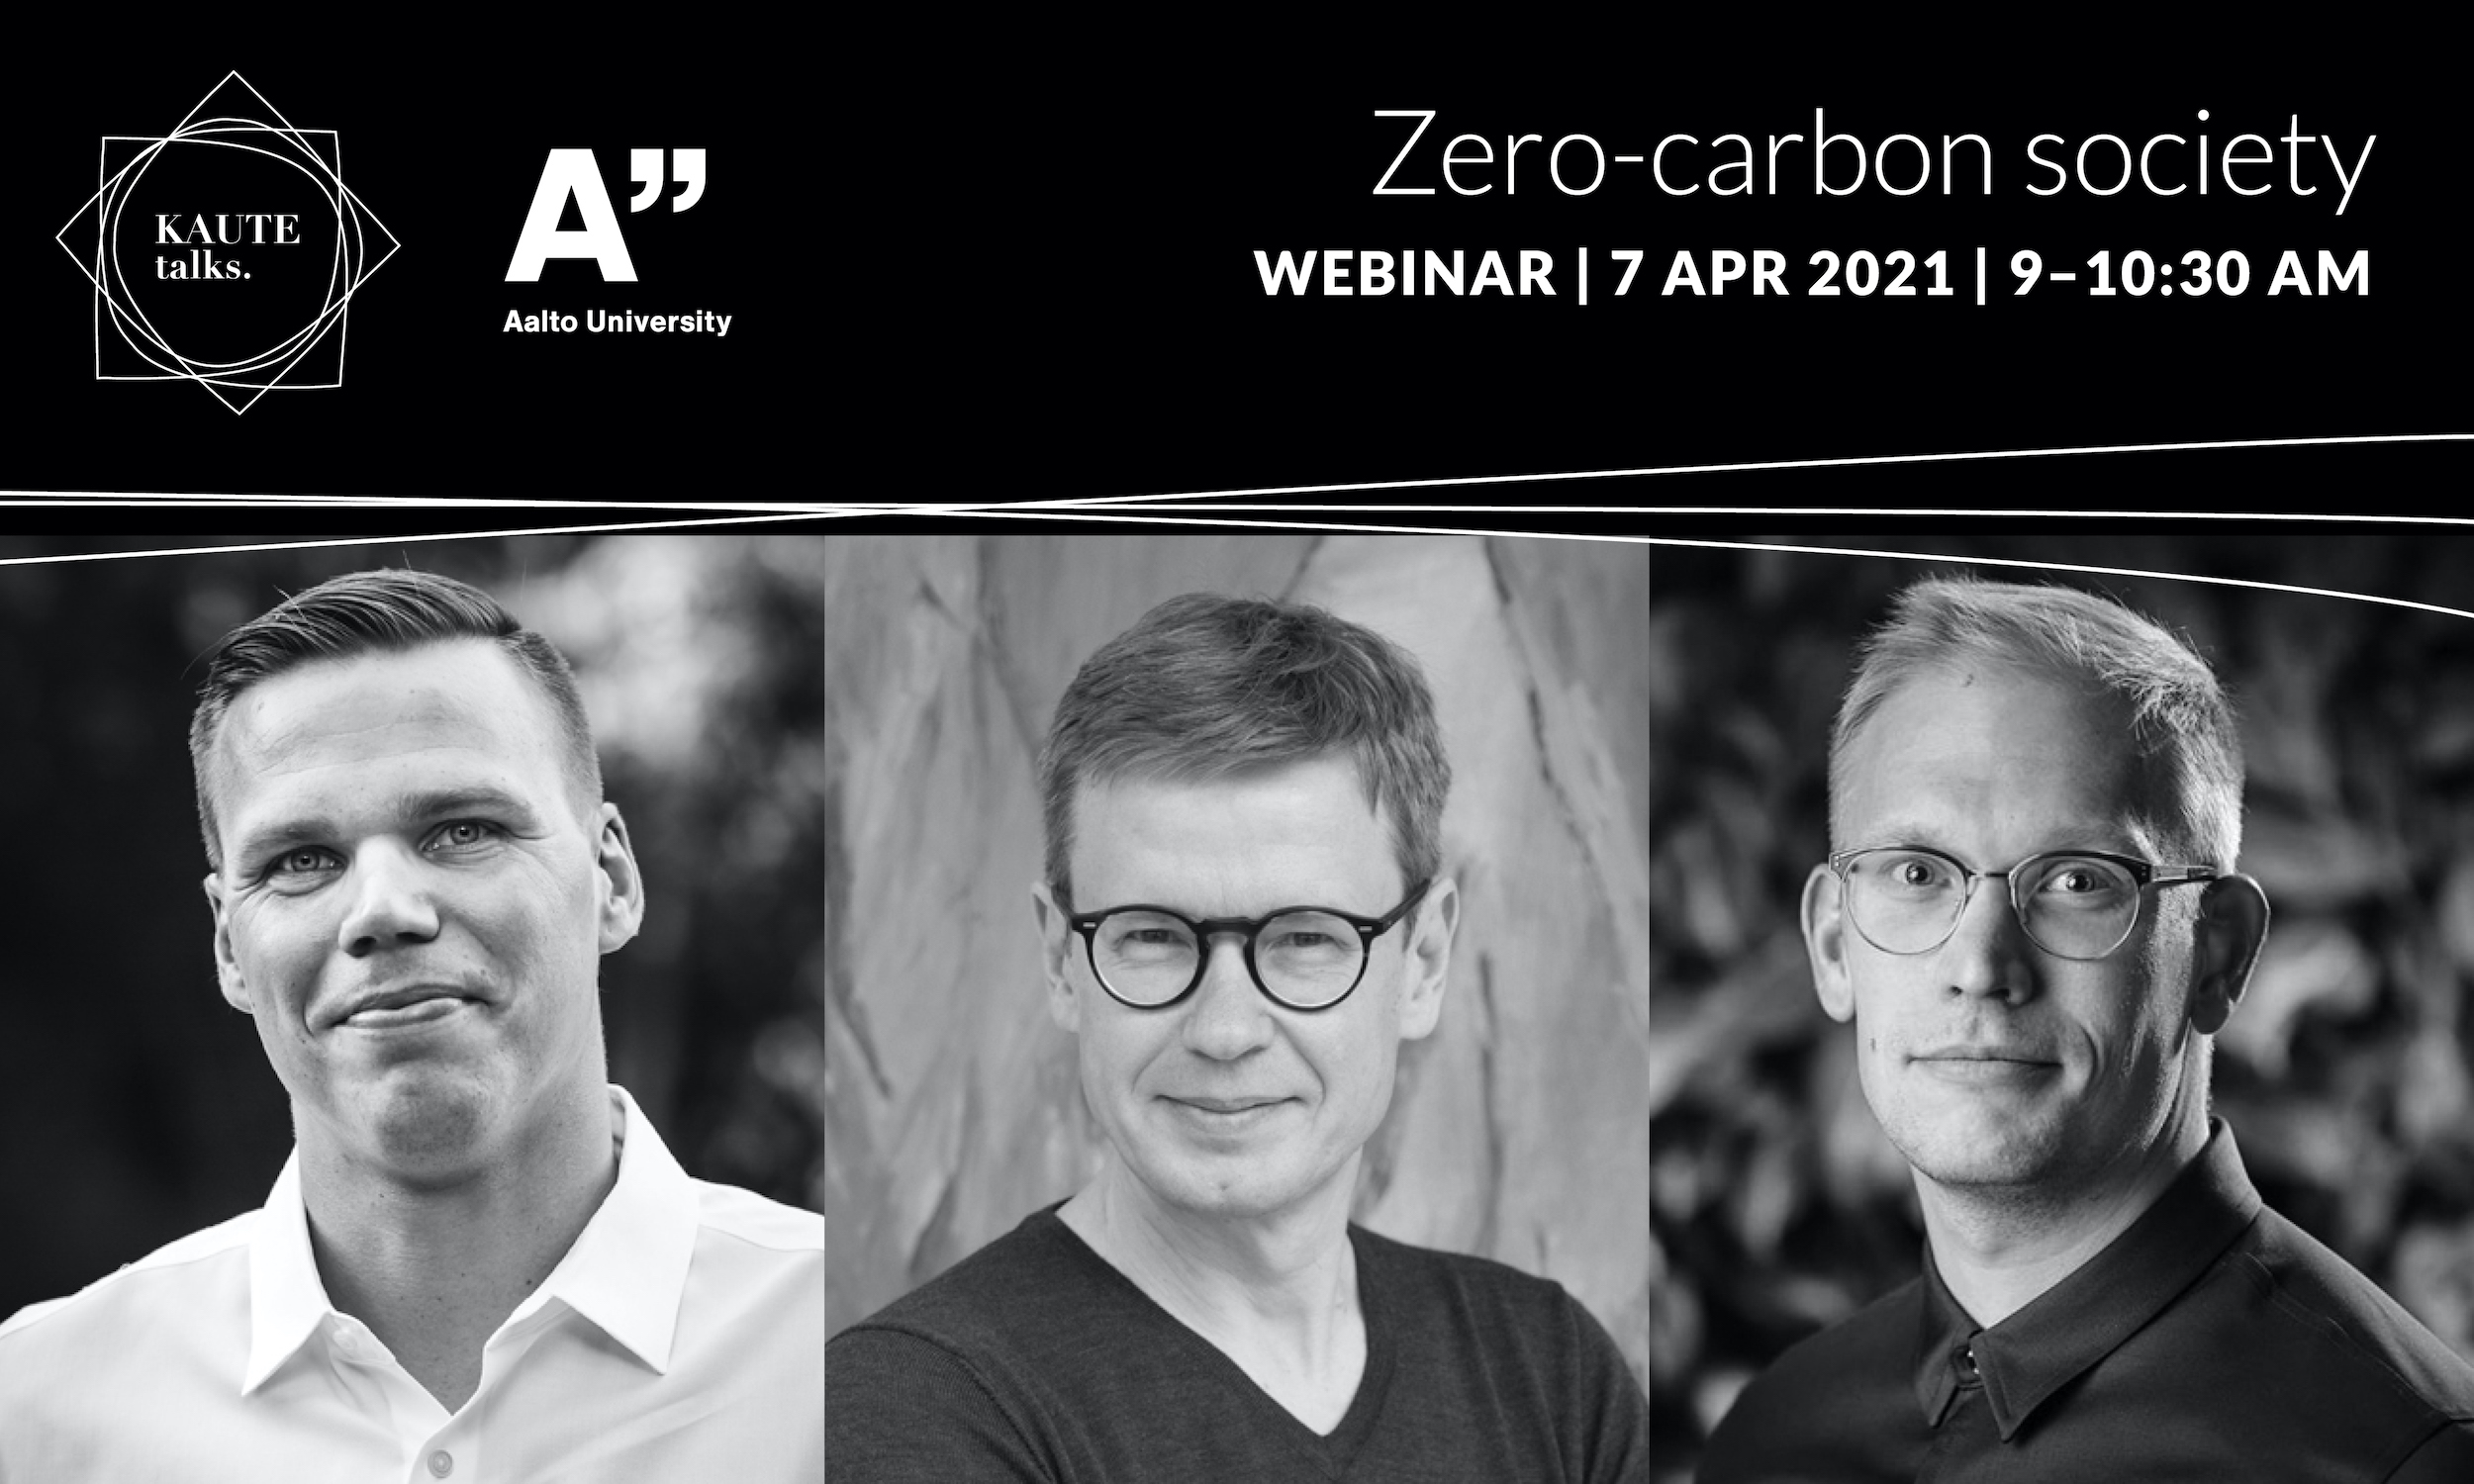 KAUTE Talks Zero-carbon society webinar